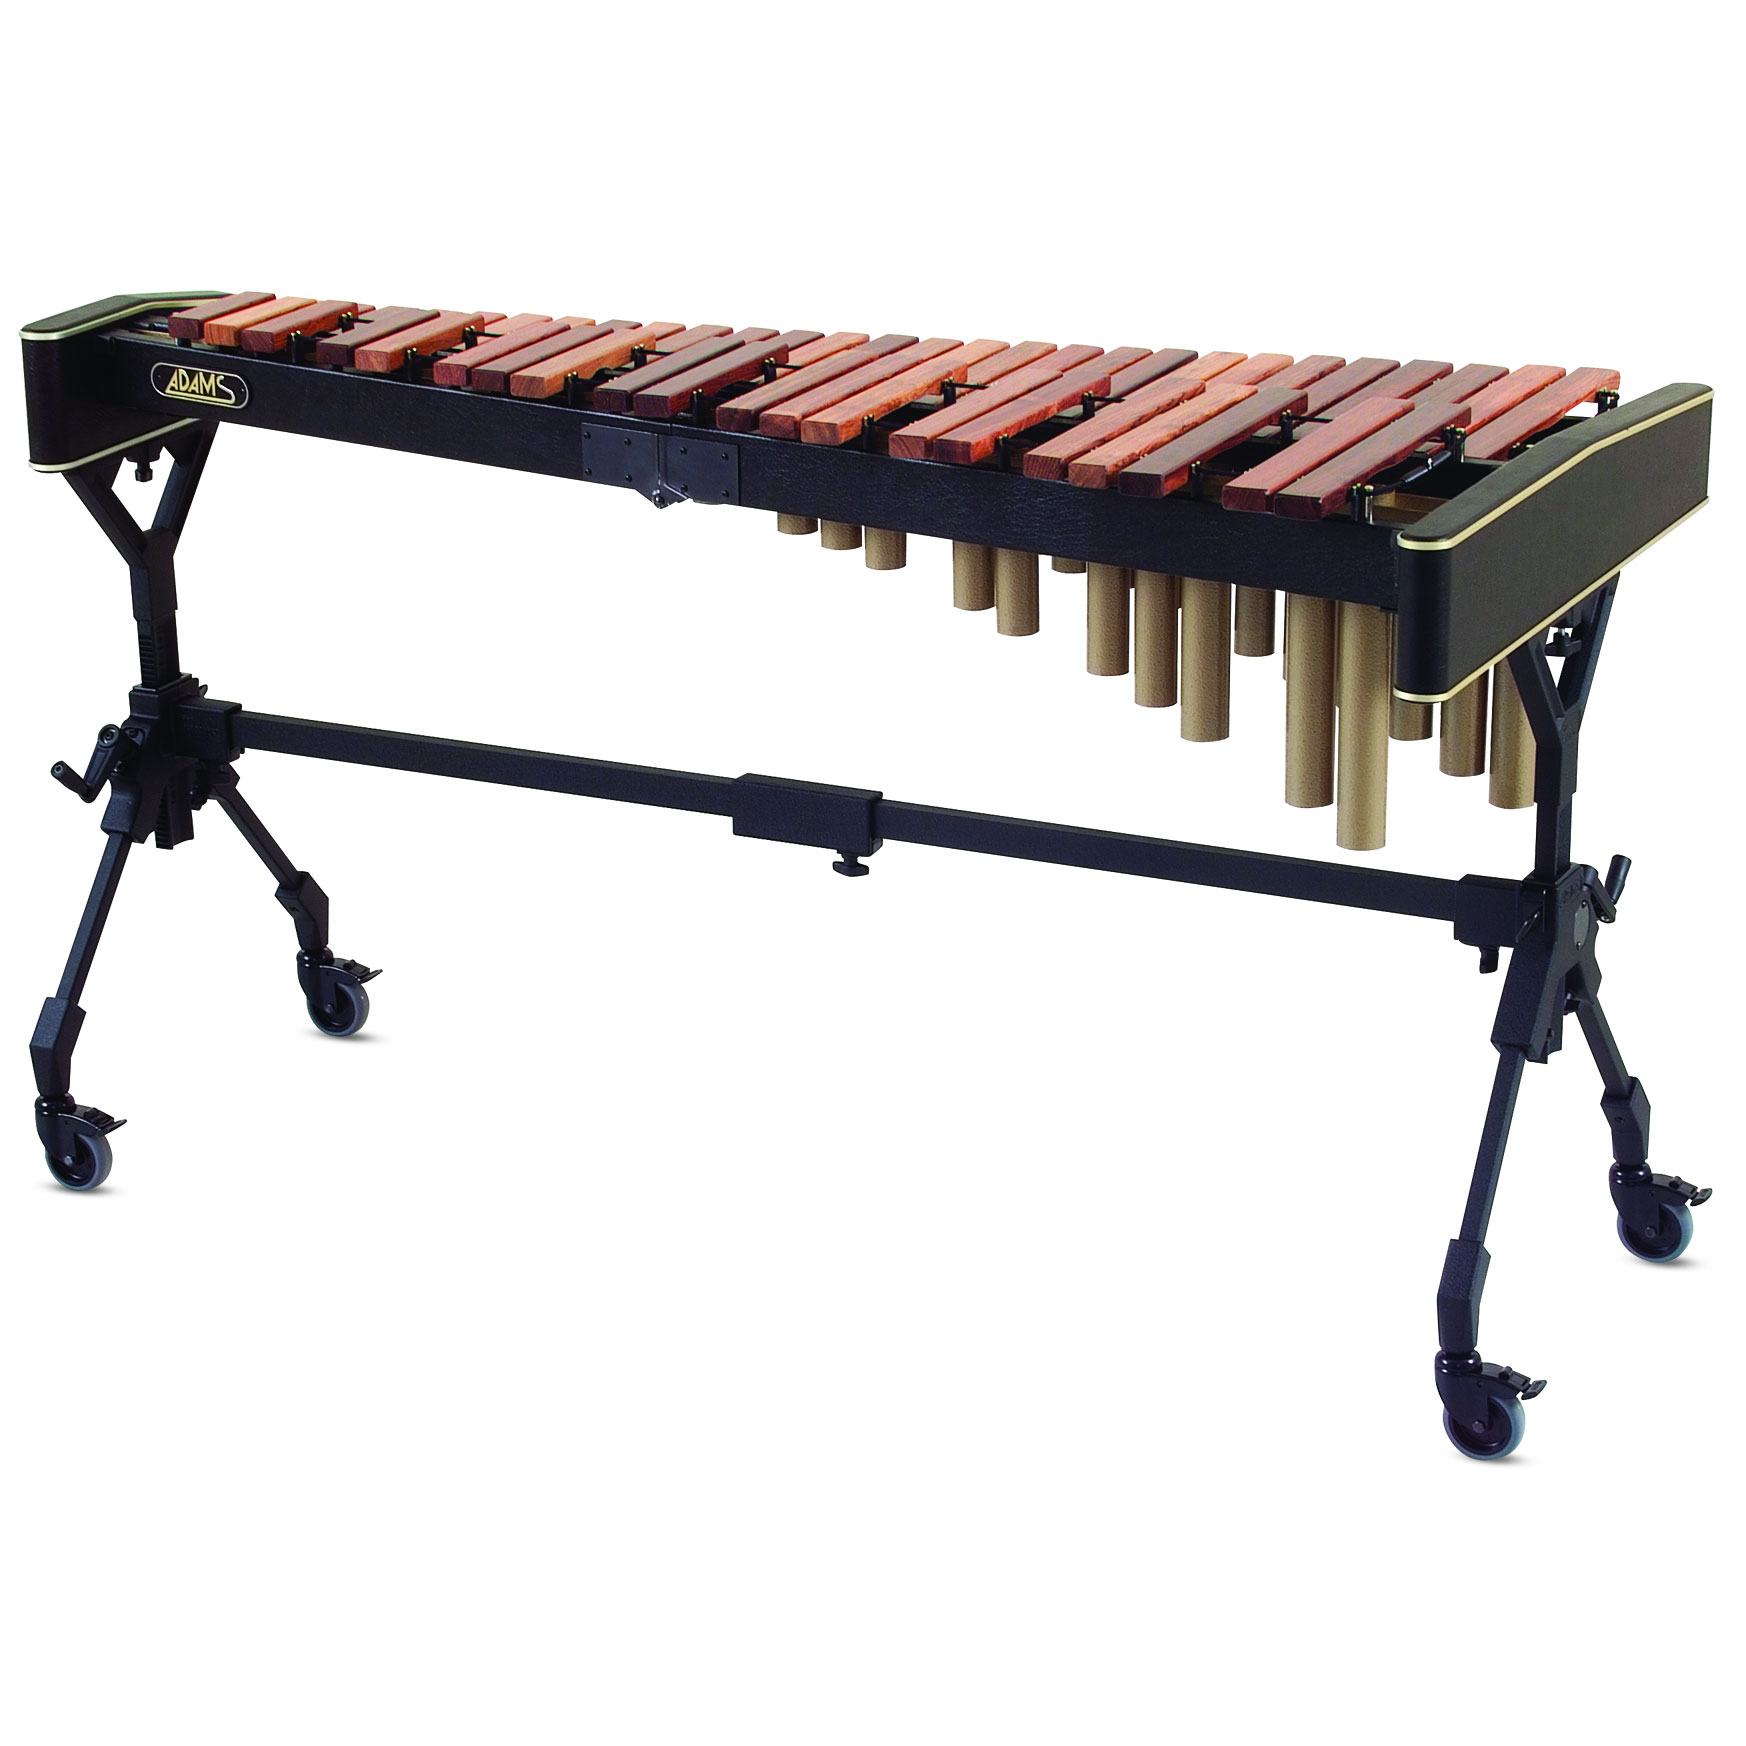 Adams 4.0 Octave Soloist Series Rosewood Xylophone with Voyager Frame